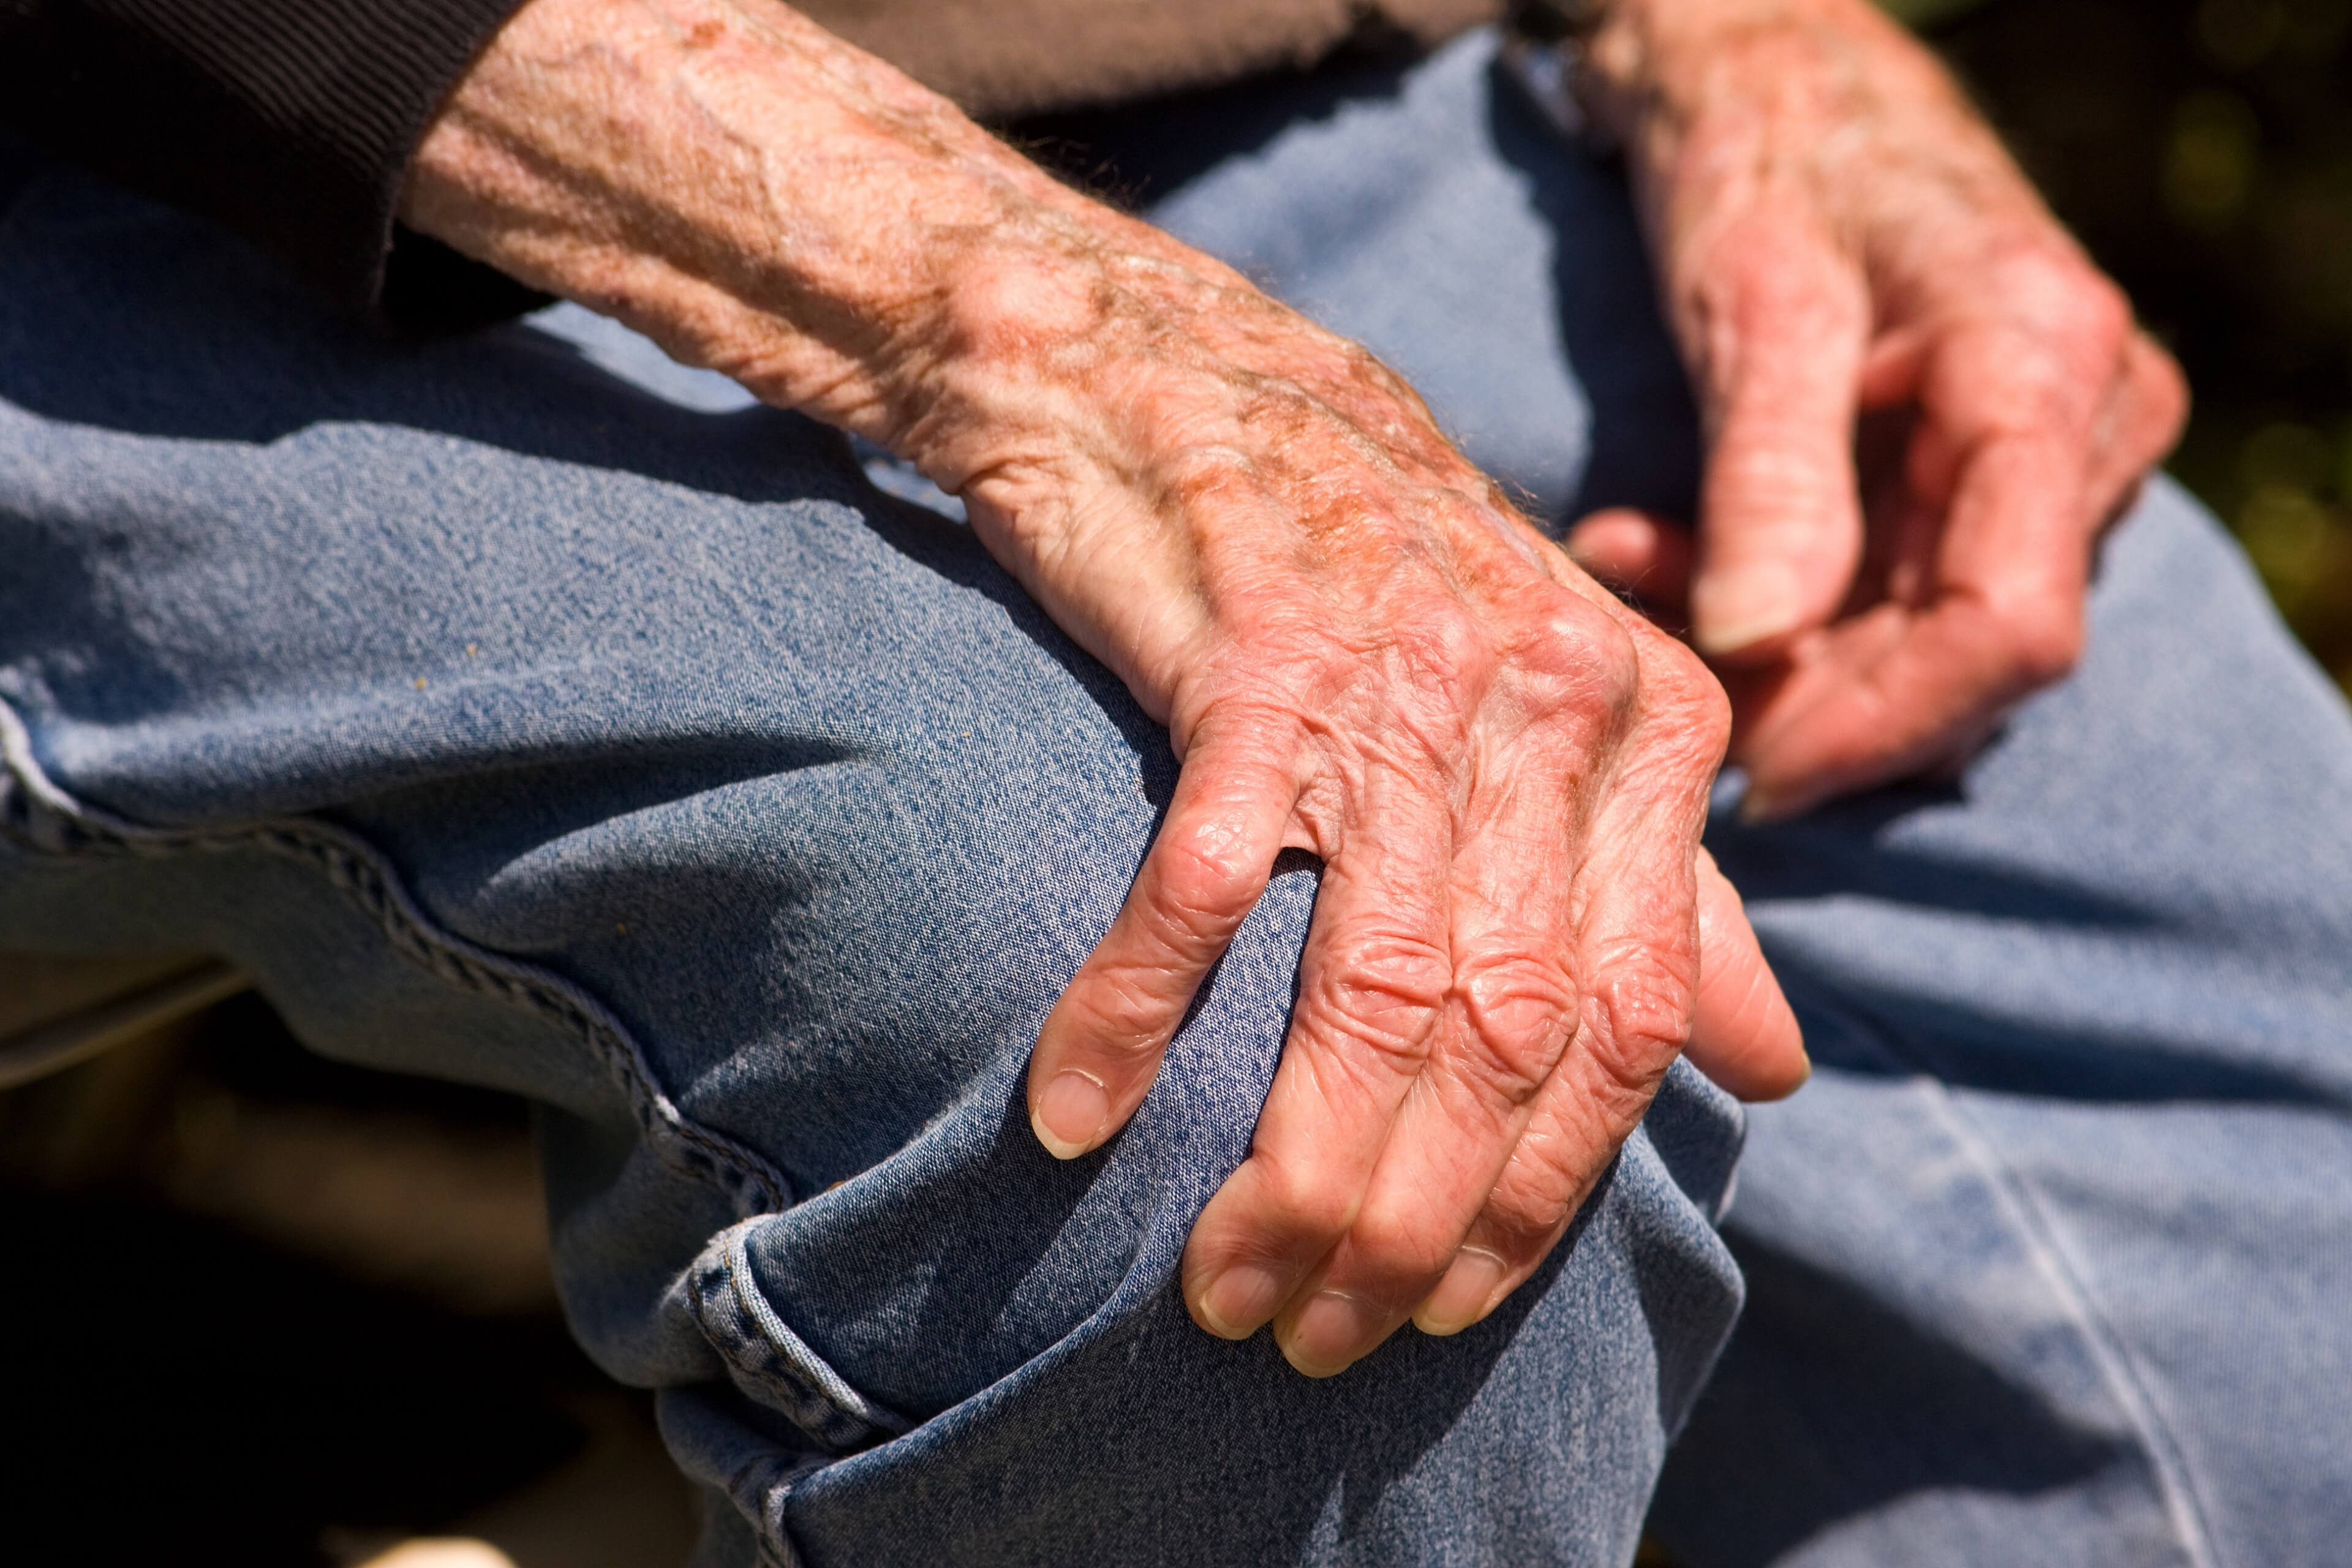 Elderly man holding knee with arthritis